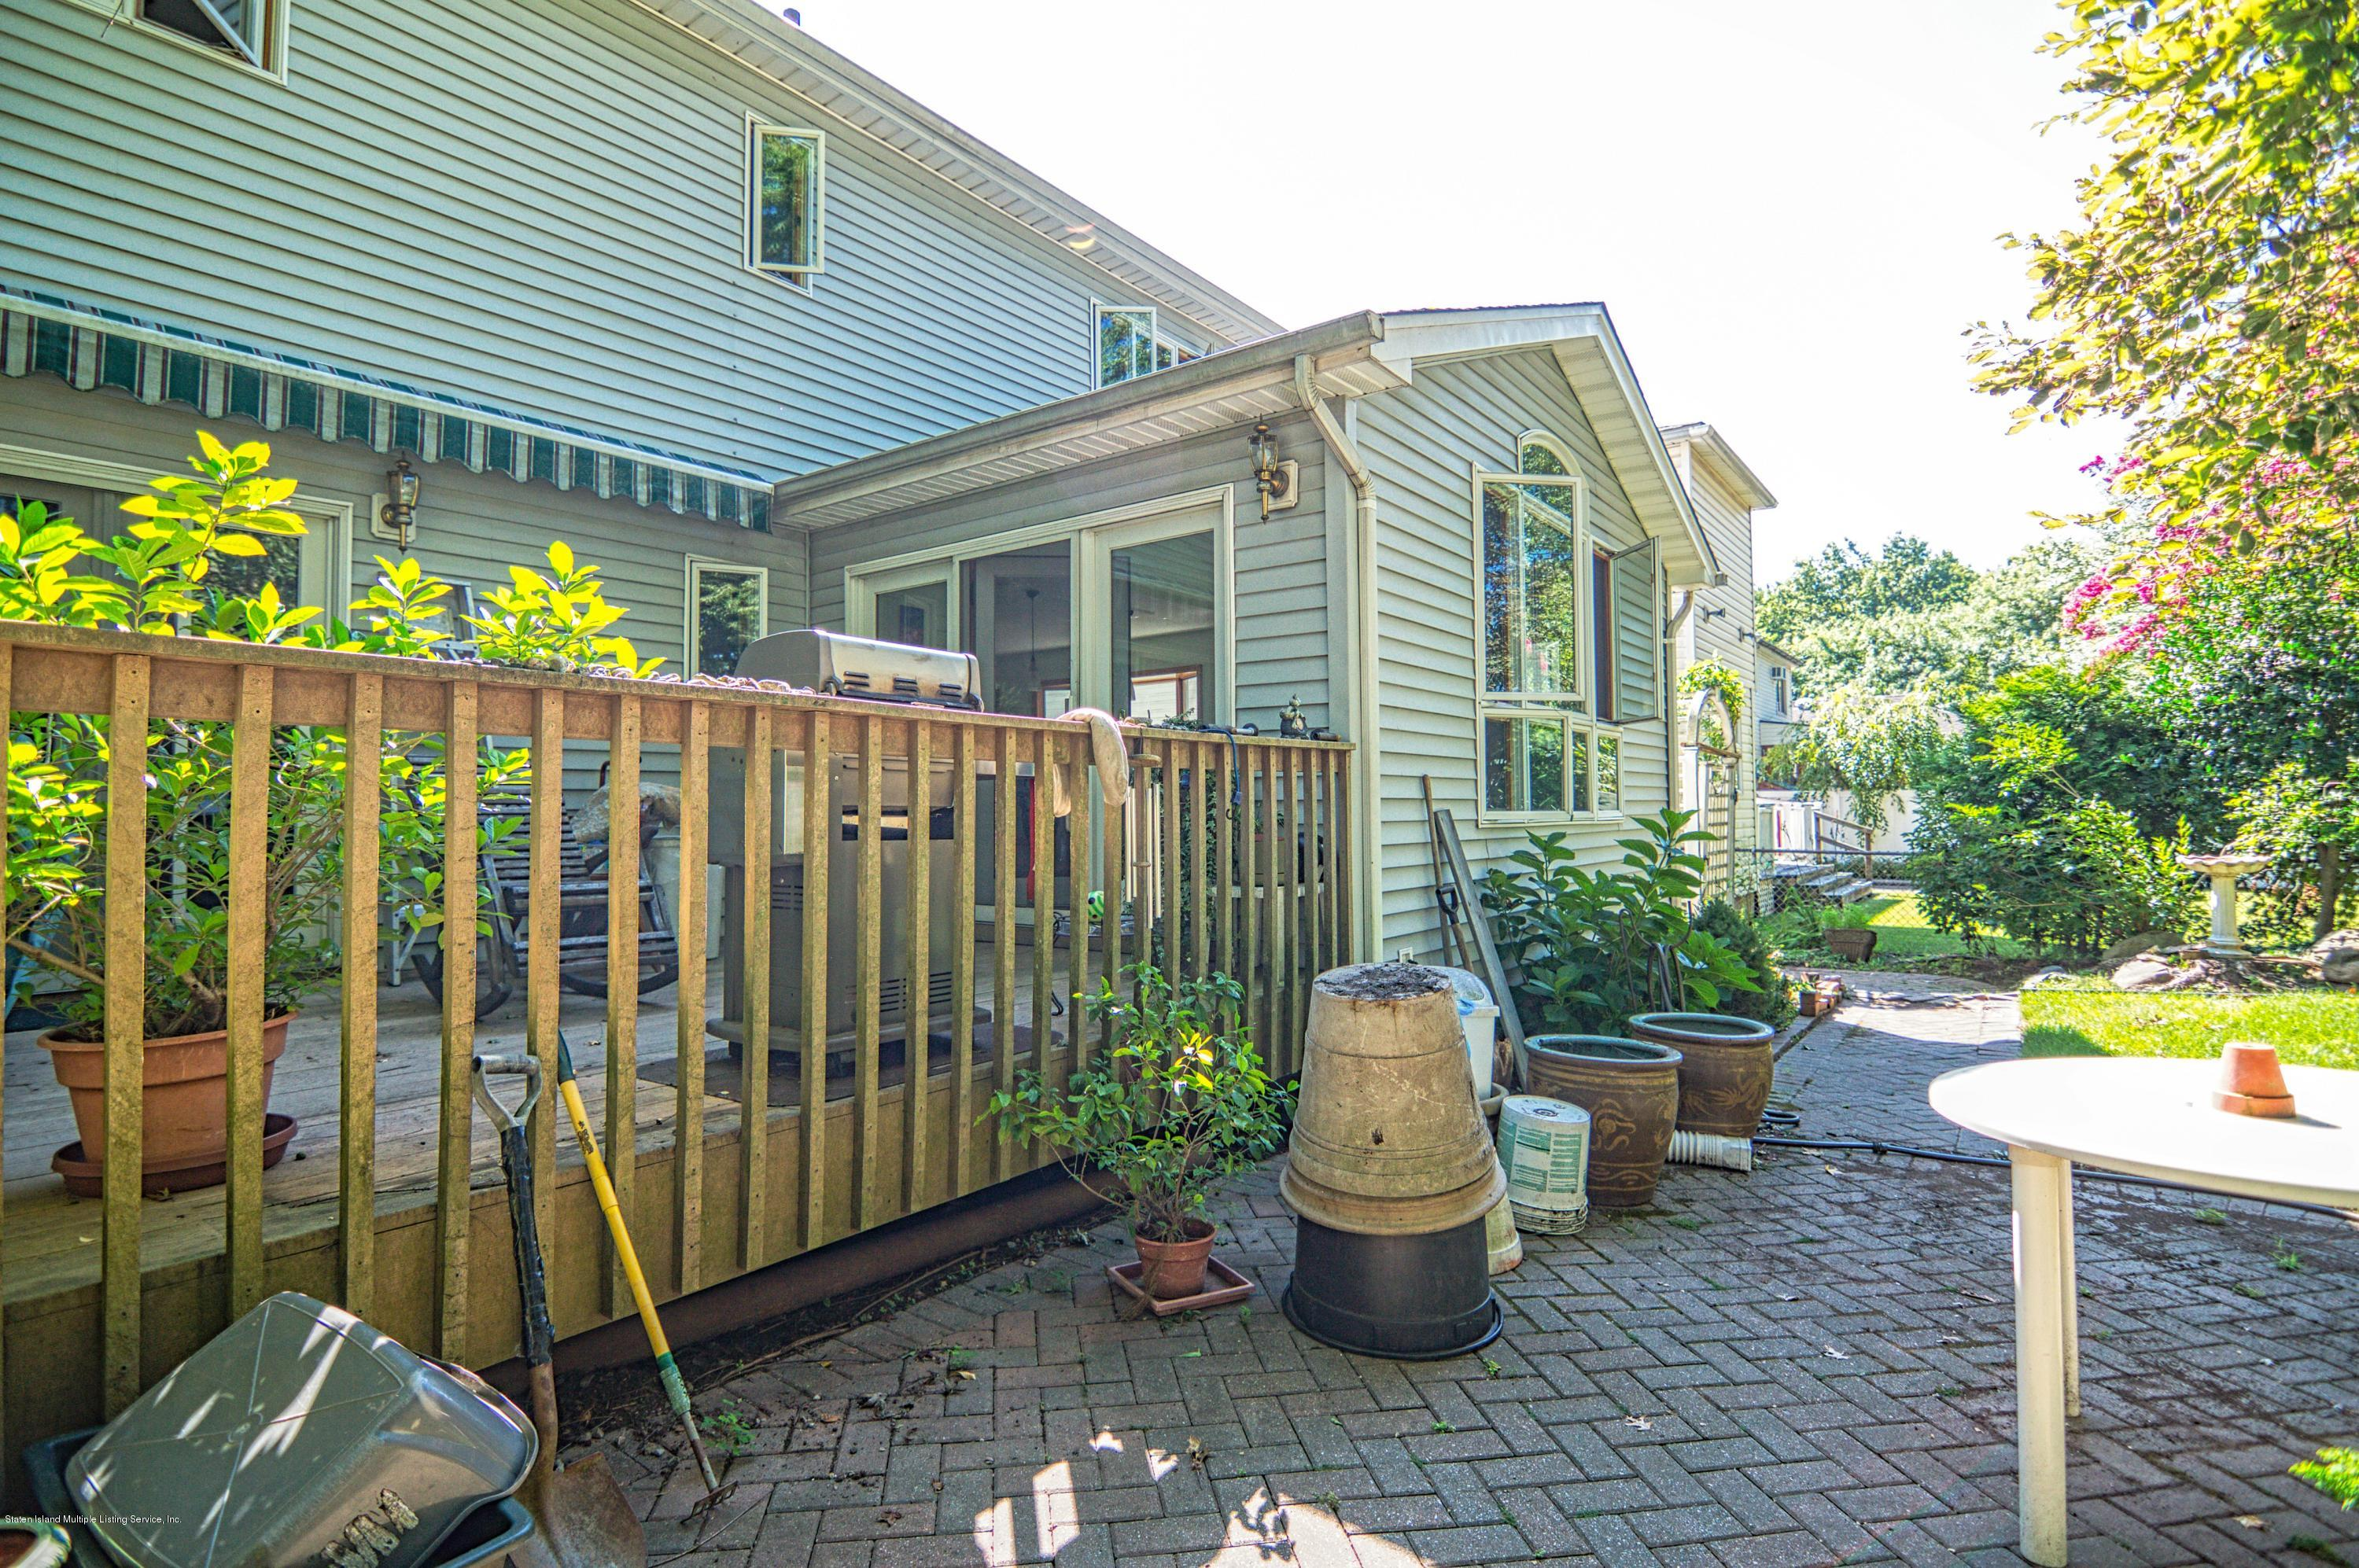 Single Family - Detached 66 Shafter Avenue  Staten Island, NY 10308, MLS-1131442-19